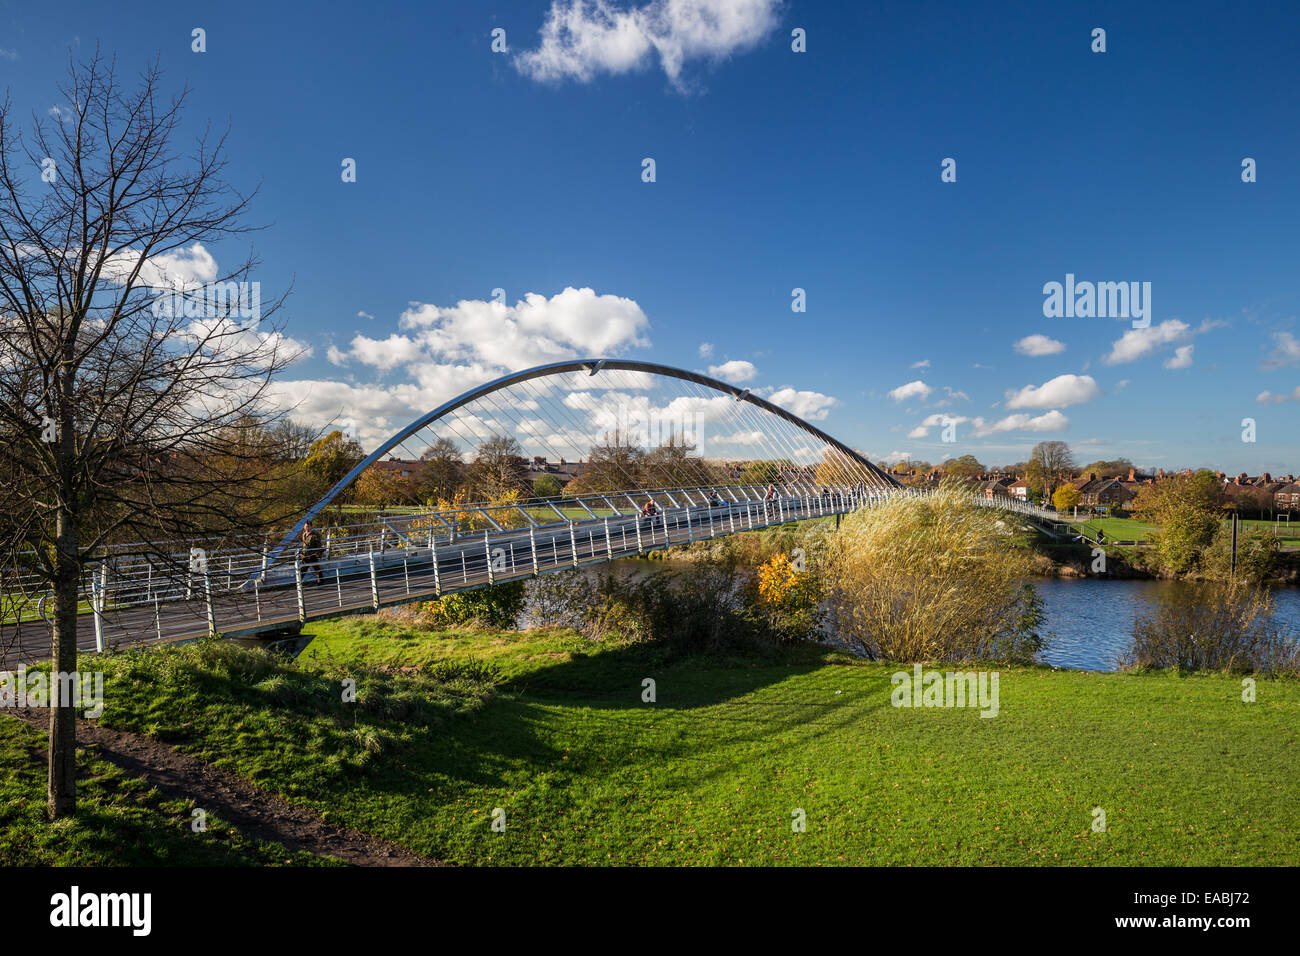 millenium-bridge-york-EABJ72.jpg